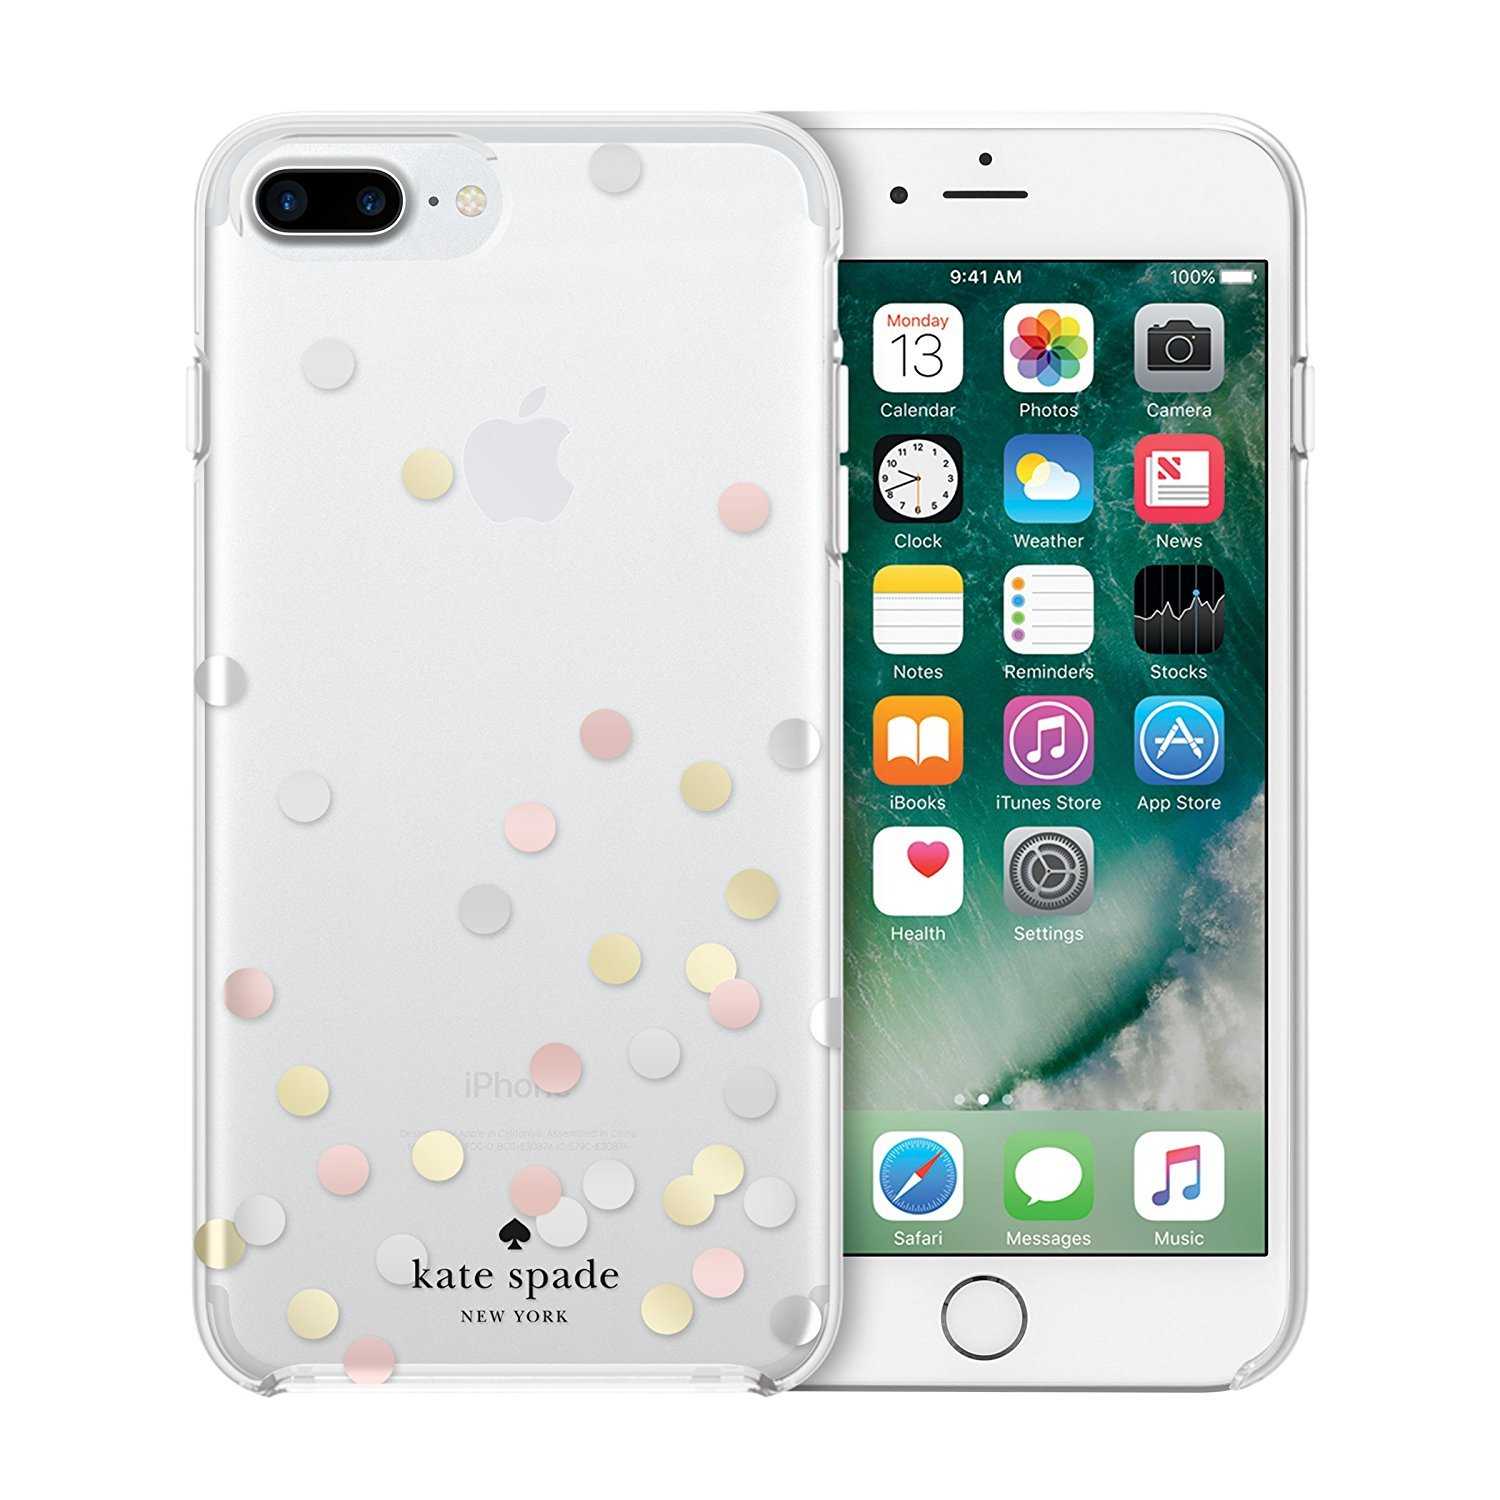 Kate Spade Protective Hardshell Case,Clear/Confetti Dot Silver Foil/Gold Foil/Rose Gold Foil, I Phone 8 Plus,7 Plus,6 Plus by Kate Spade New York